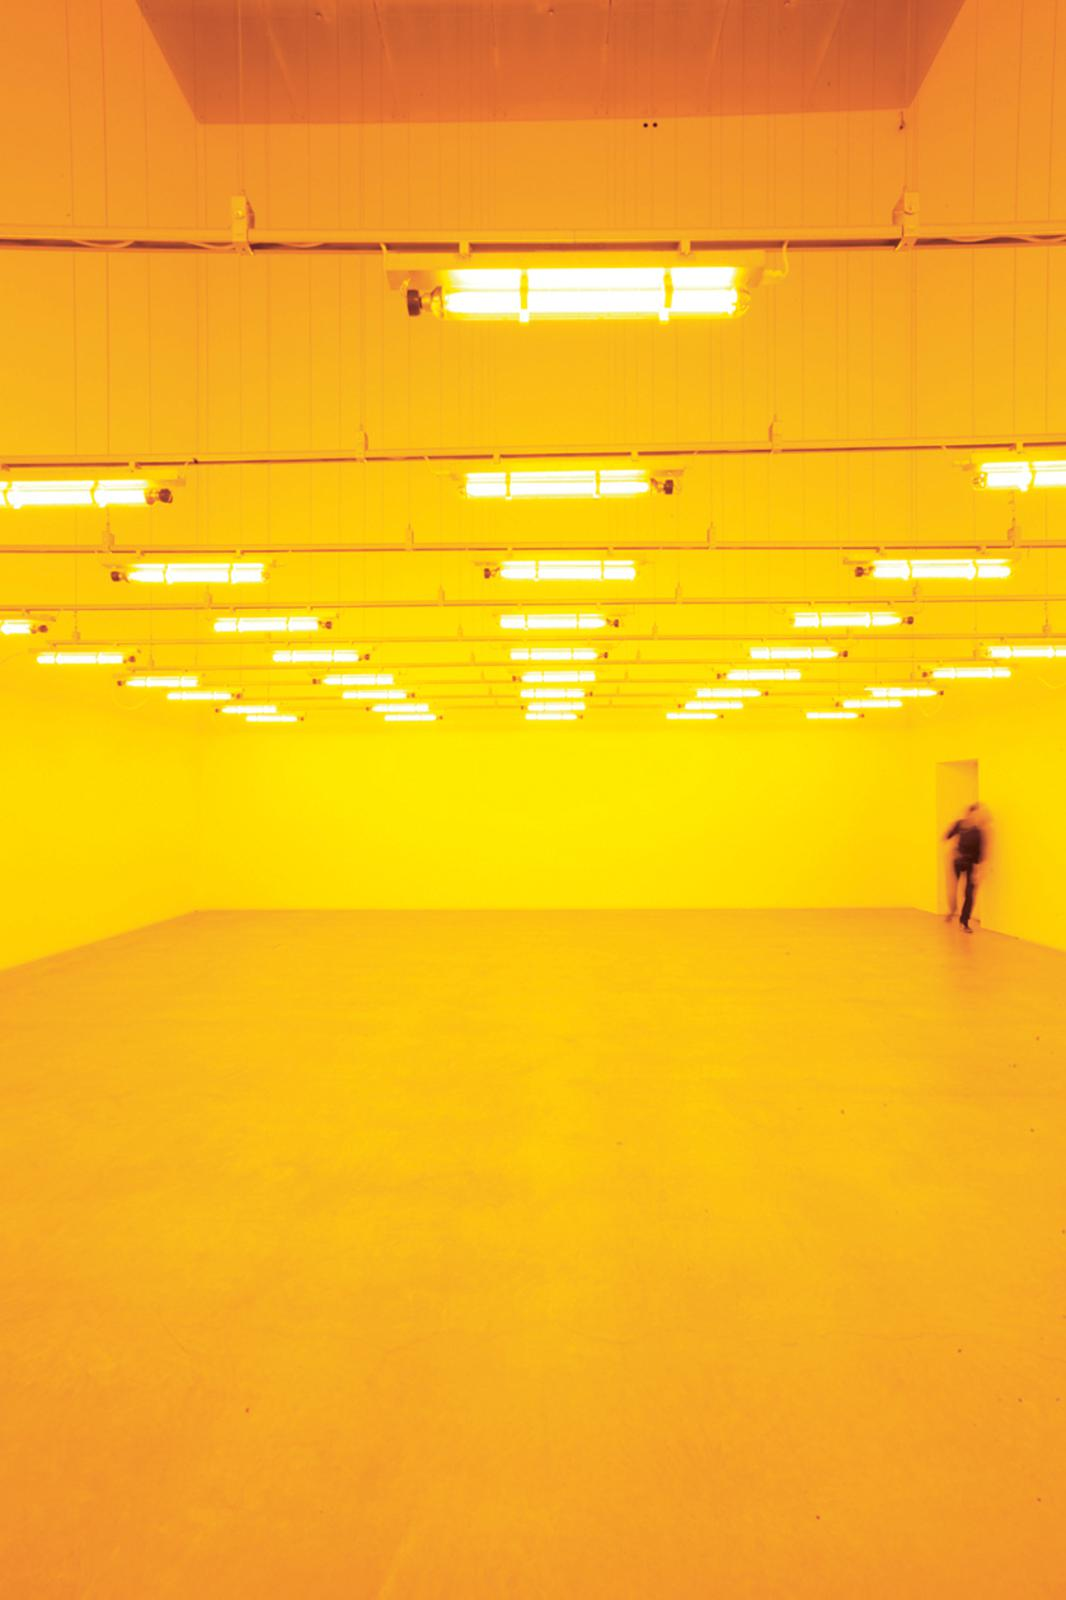 kitchen ceiling ideas runners for hardwood floors room one colour • artwork studio olafur eliasson